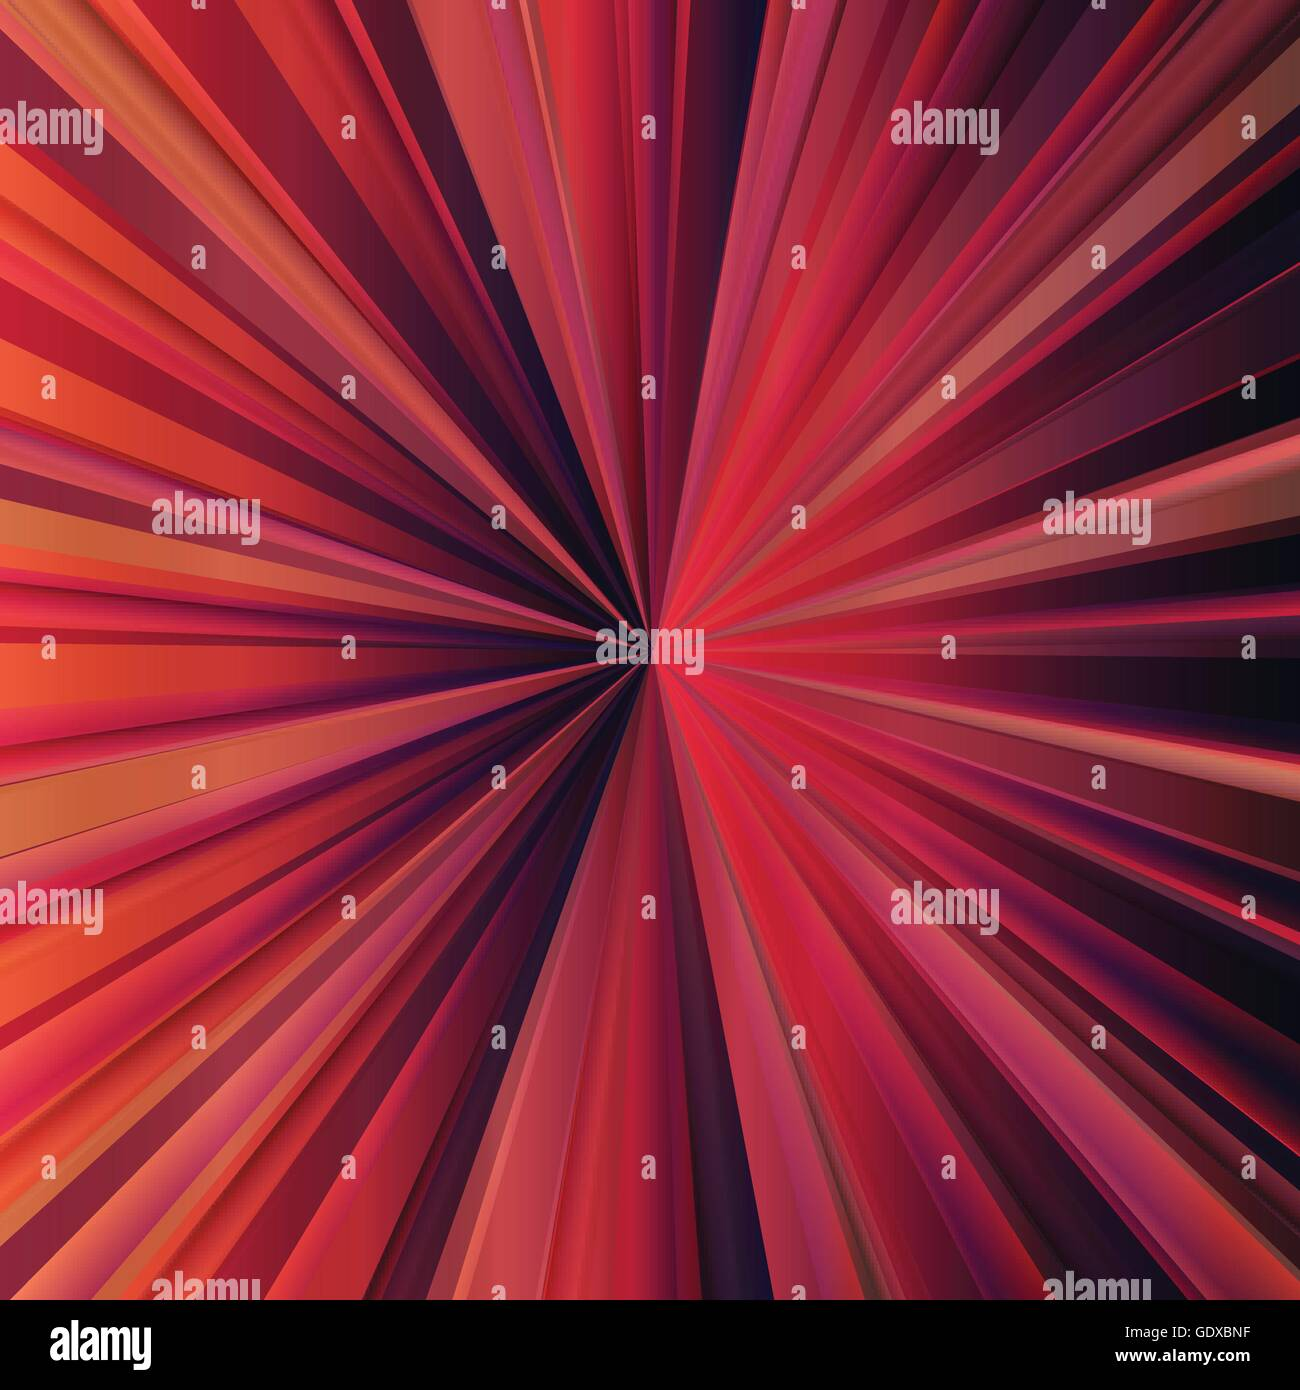 Red sunburst vector background with dark edges for poster Stock Vector